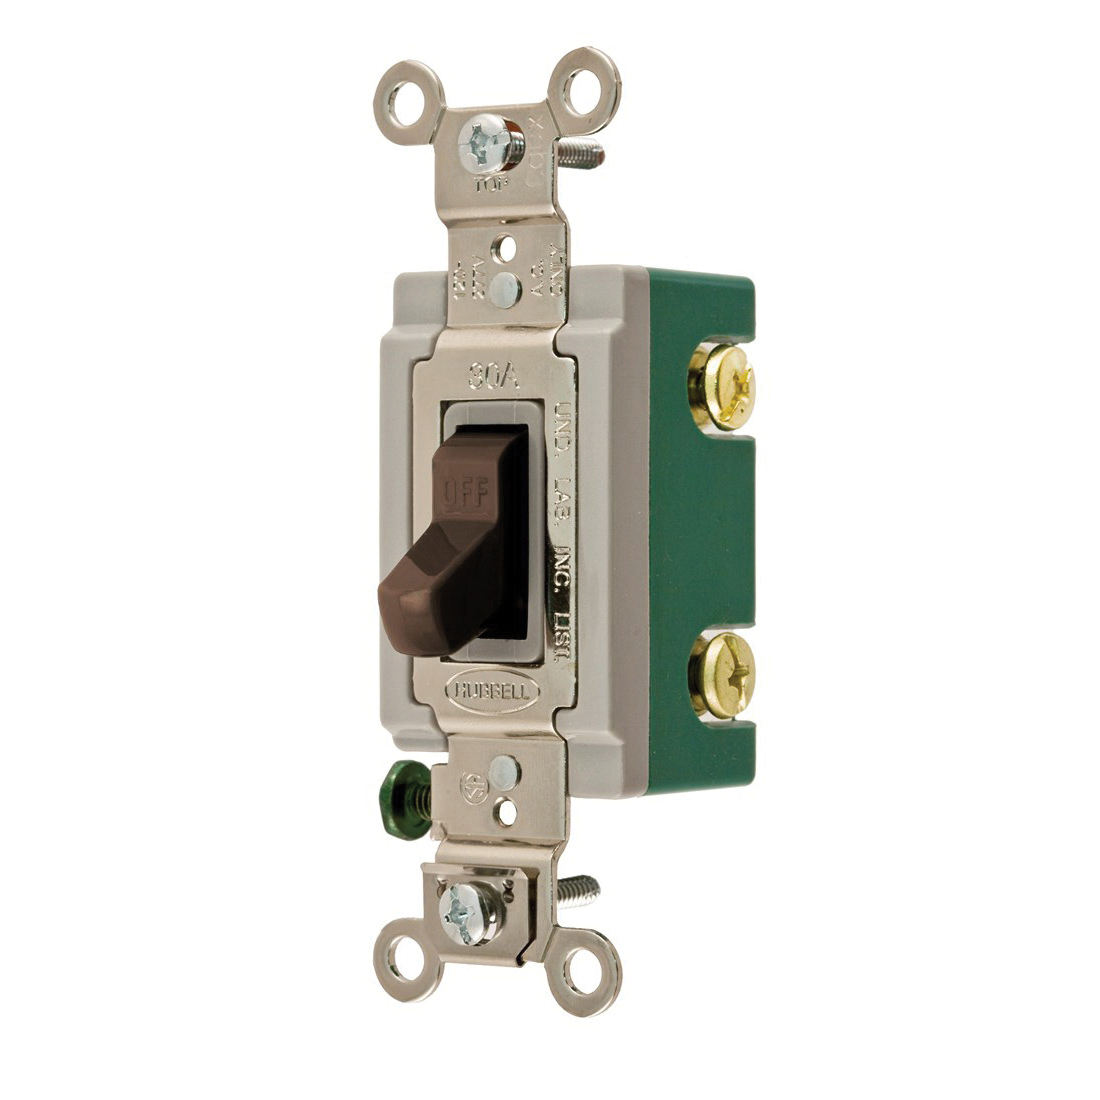 Wiring Device-Kellems HBL3032 Extra Heavy Duty Toggle Switch, 120 ...